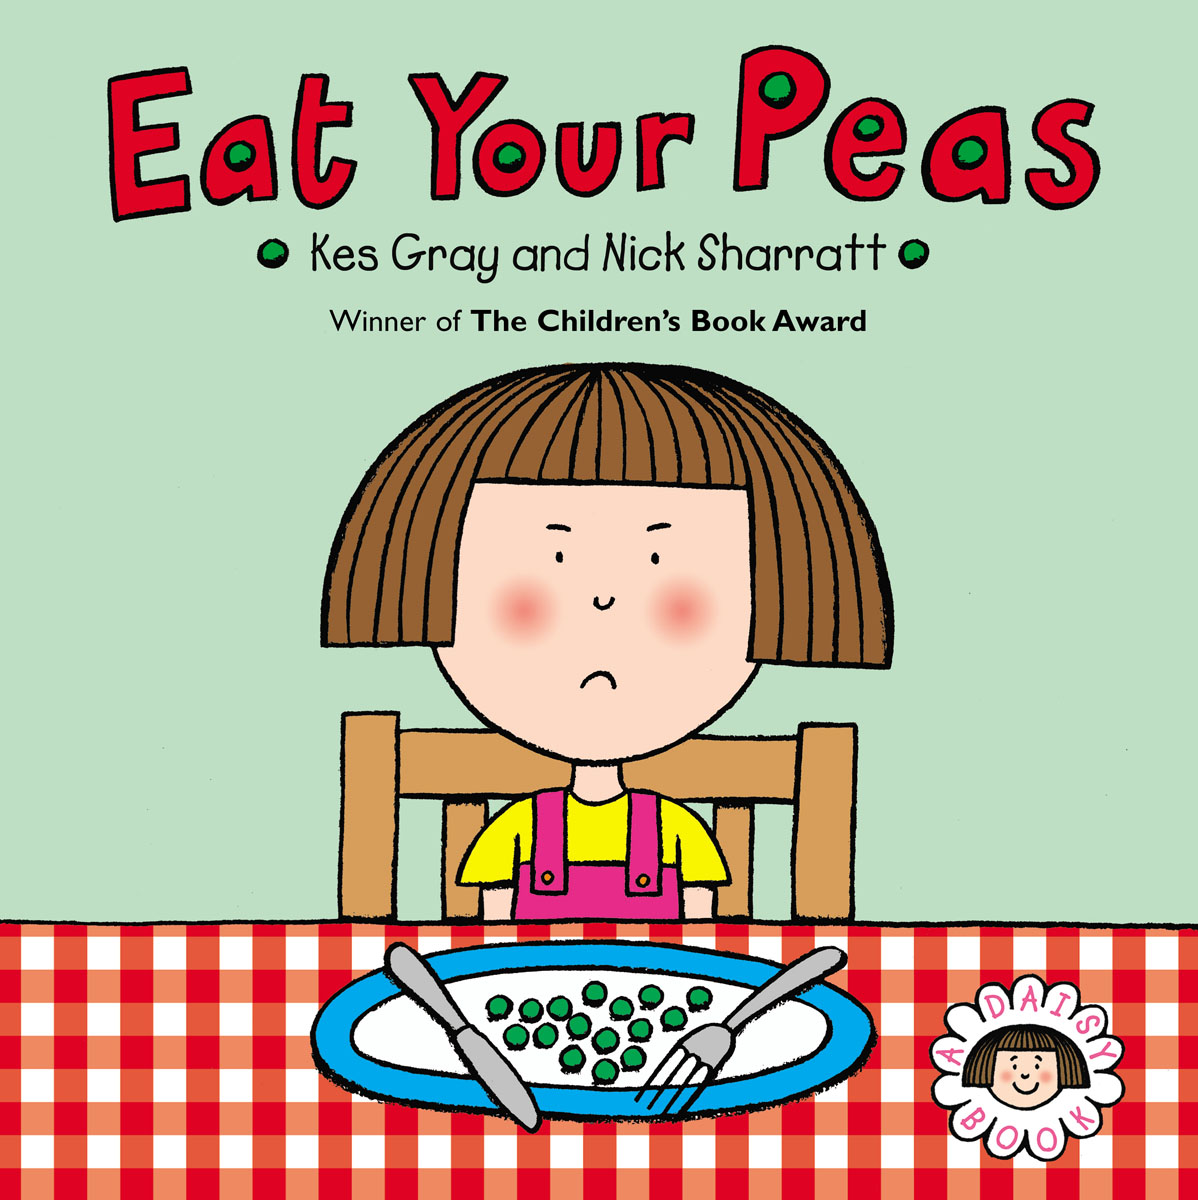 Eat Your Peas bear grylls extreme food what to eat when your life depends on it